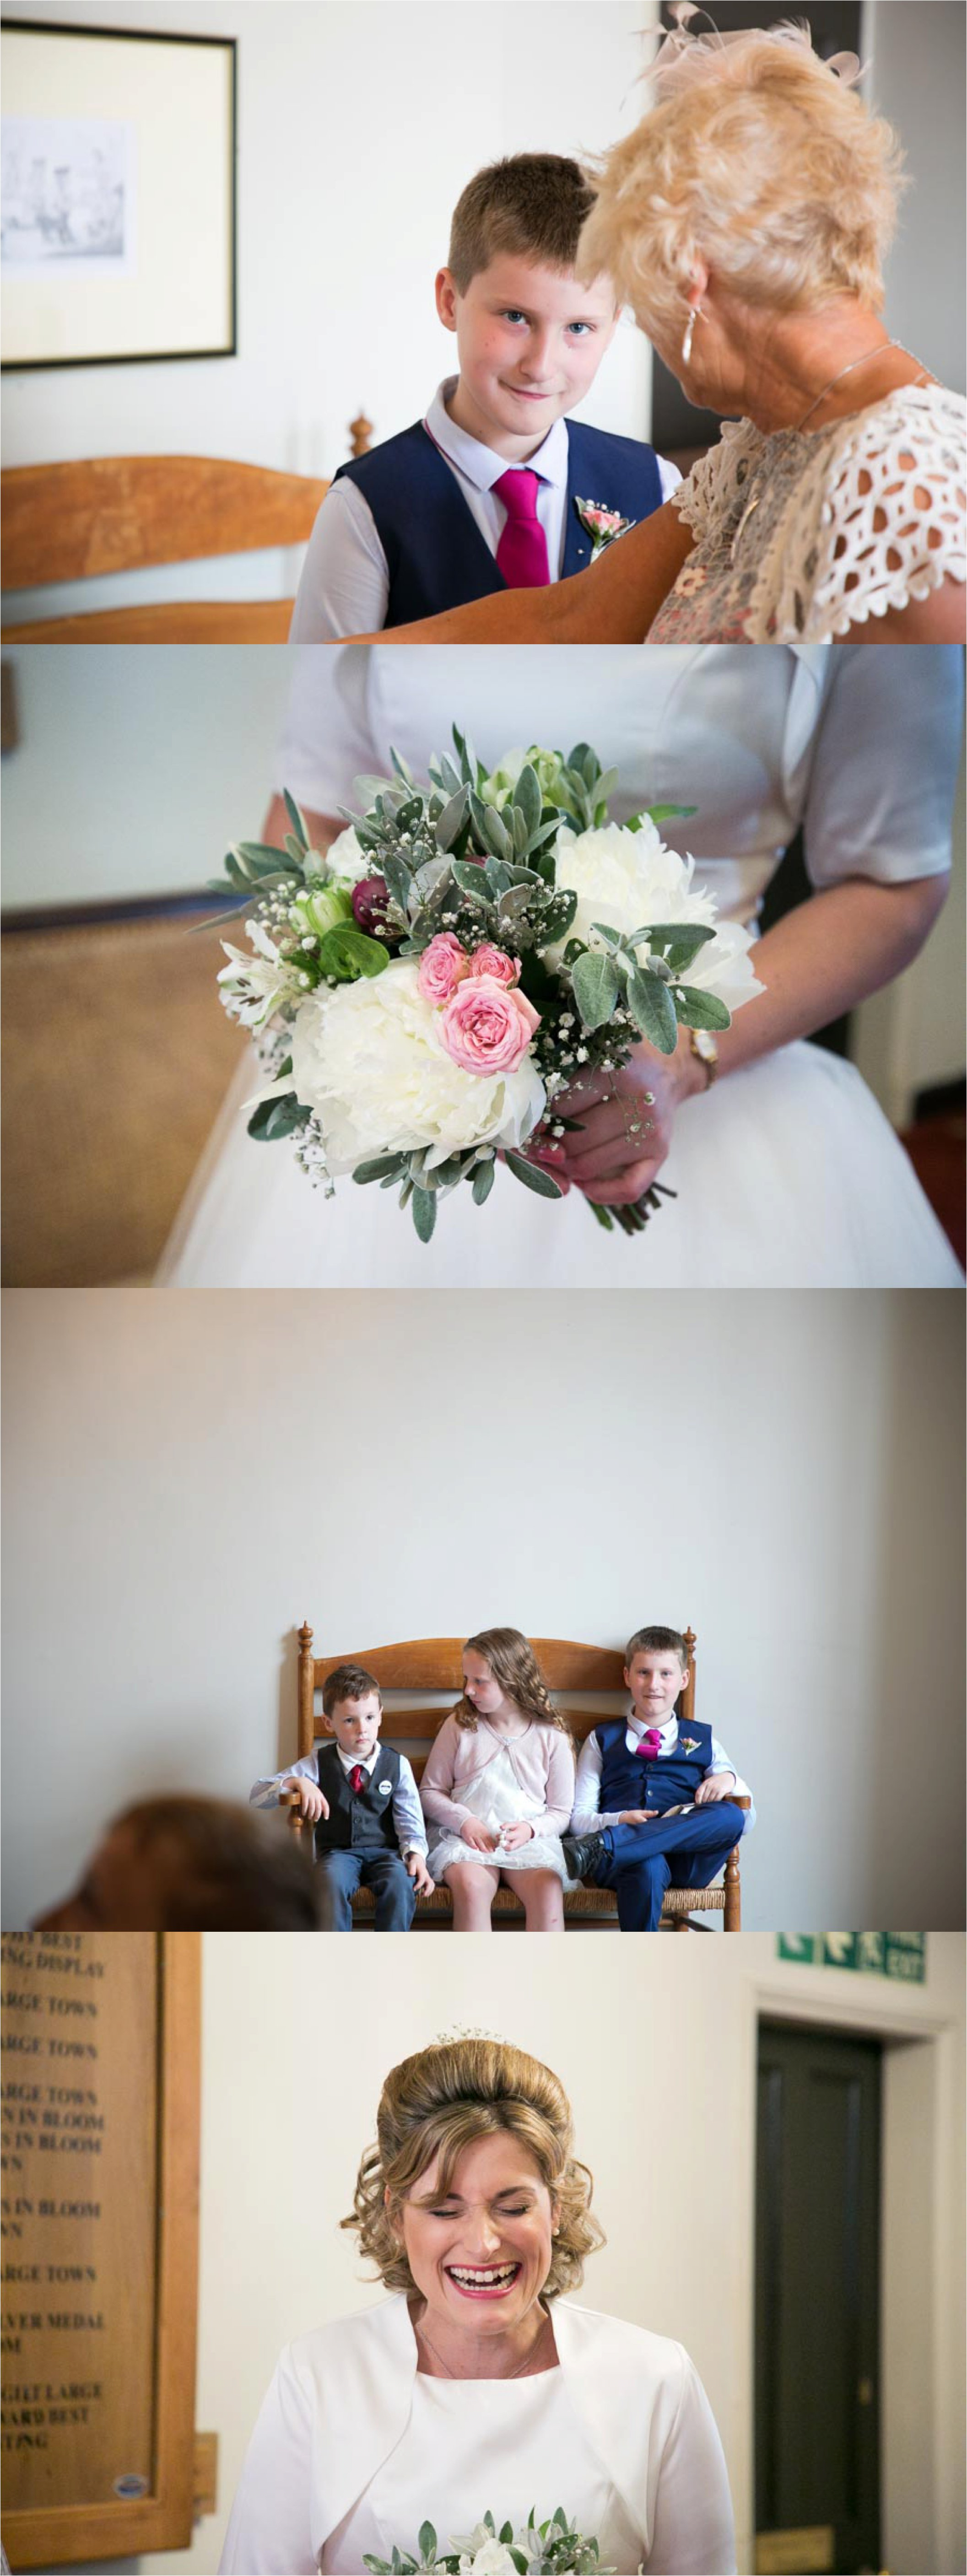 small weekday wedding photography at The Athenaeum Bury St Edmunds